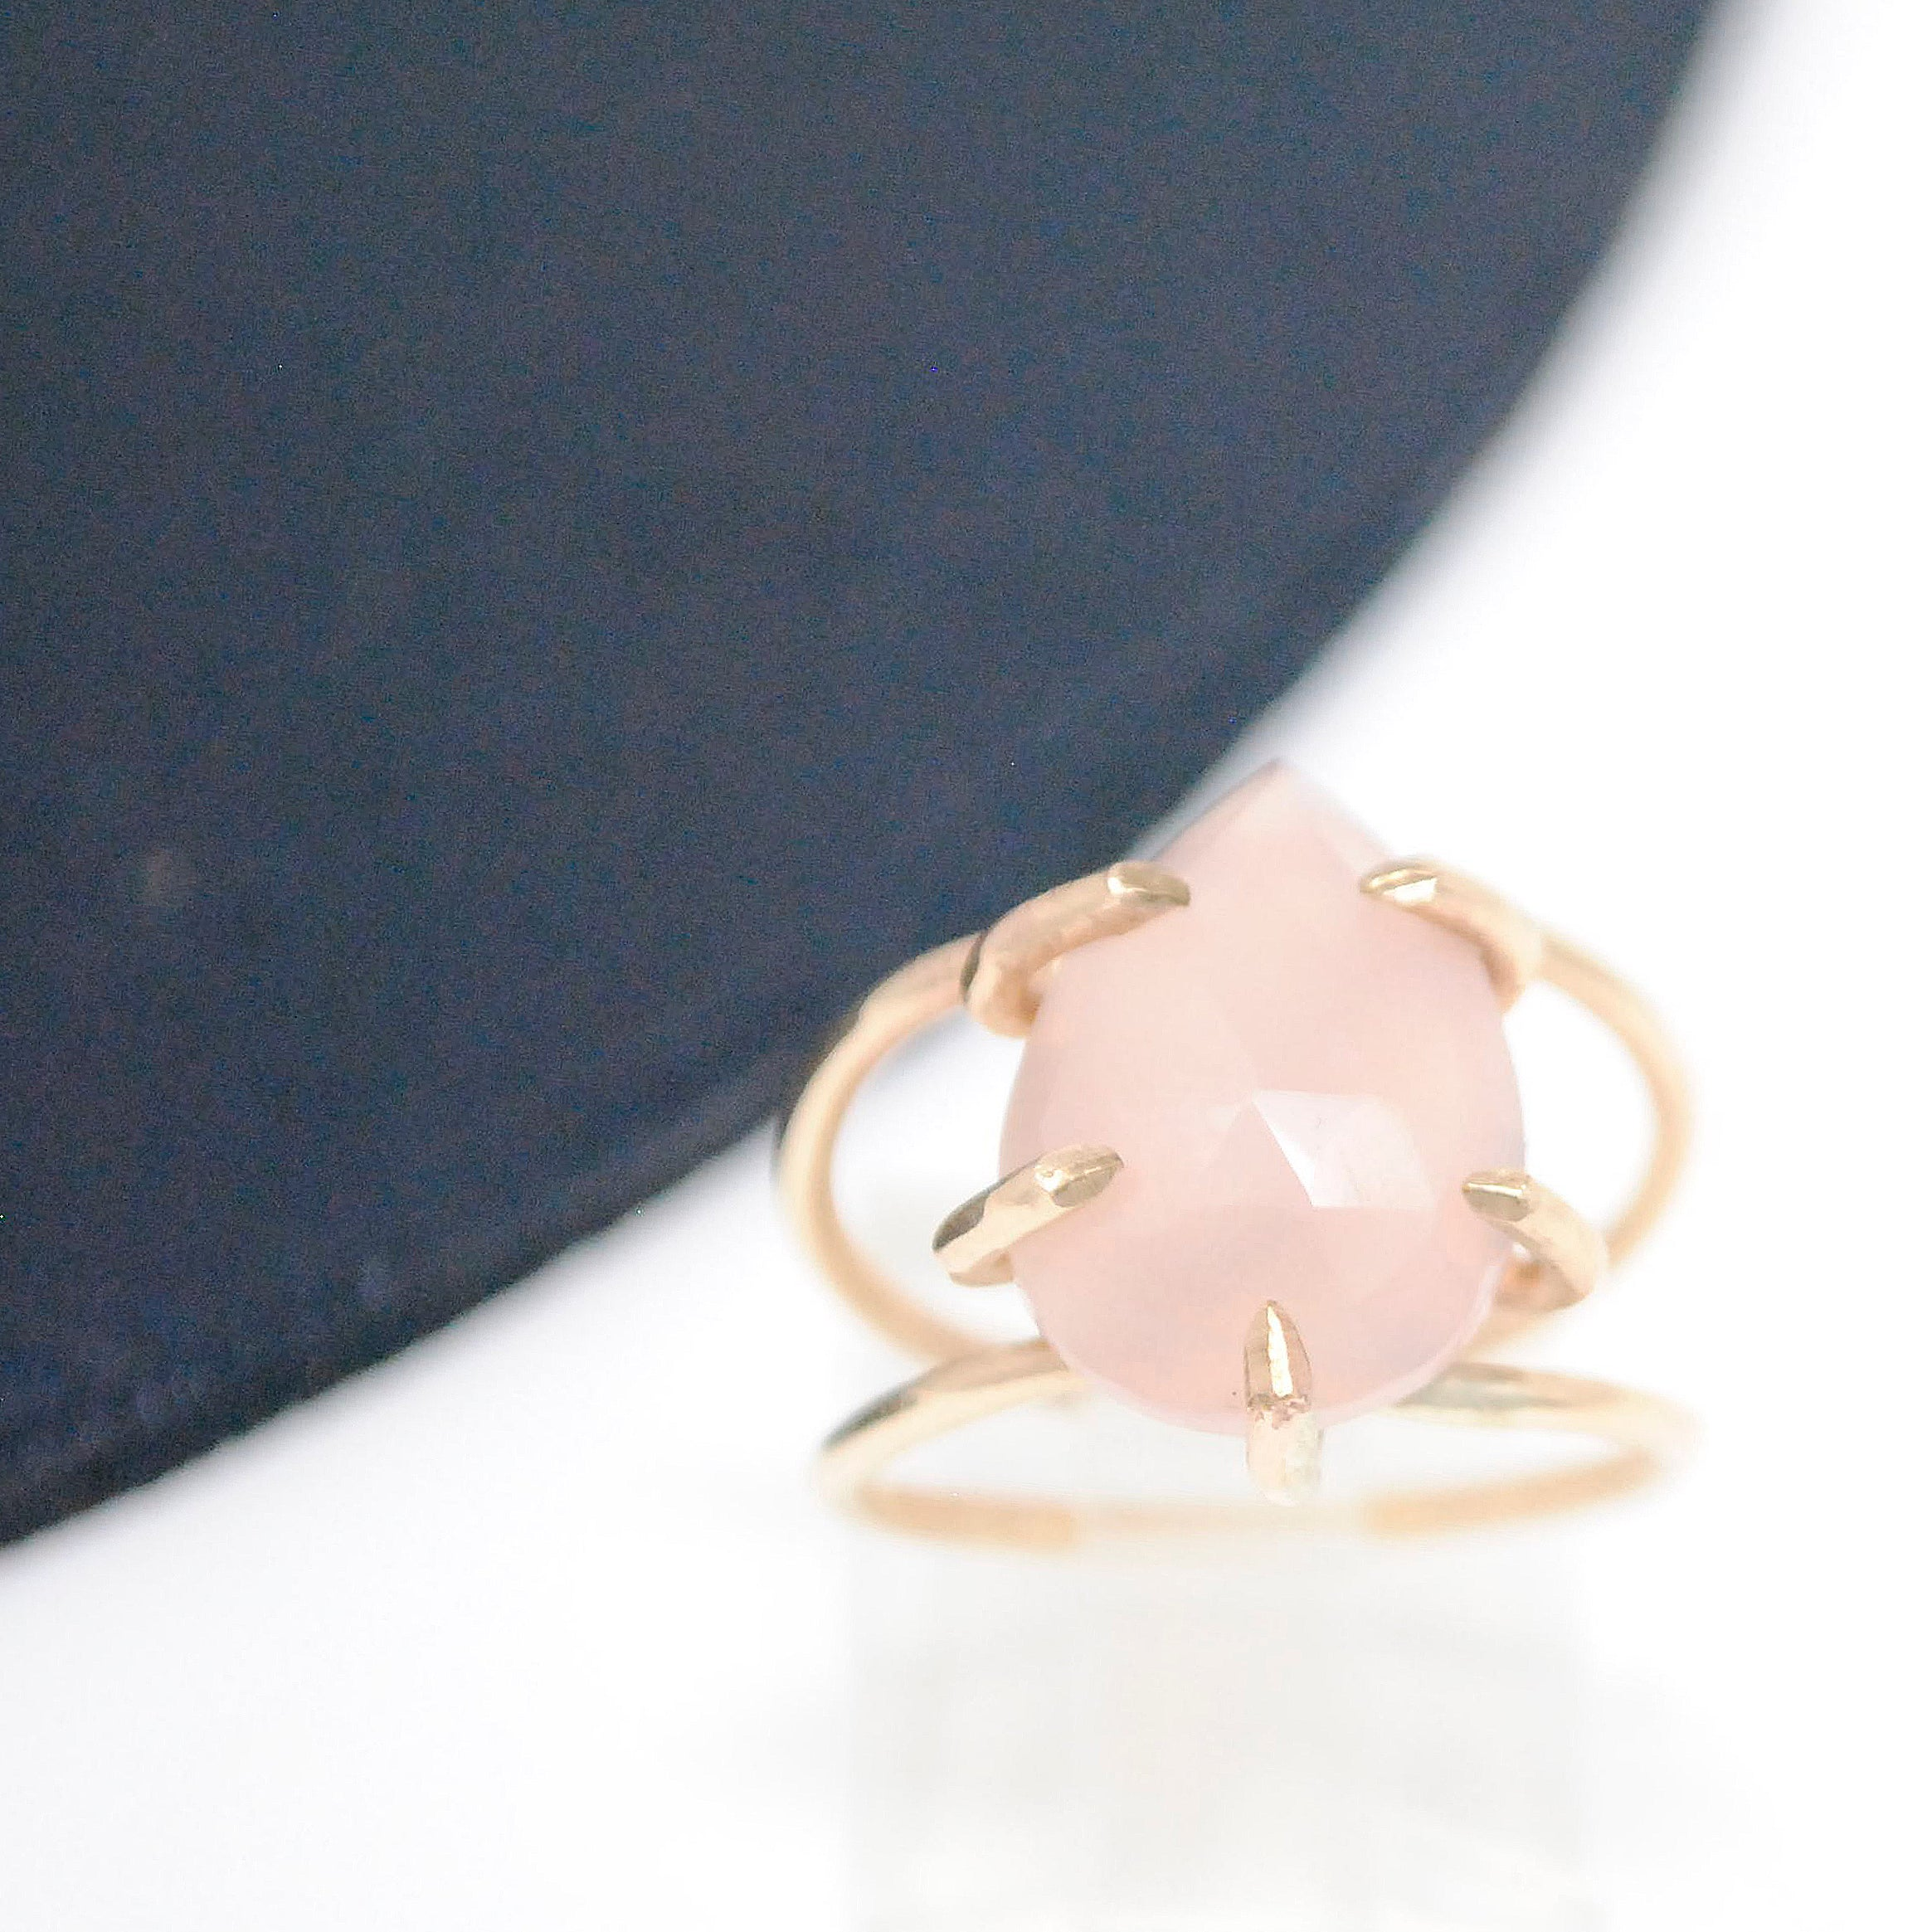 Daedal Gold Filled Rose Quartz Prong Set Ring